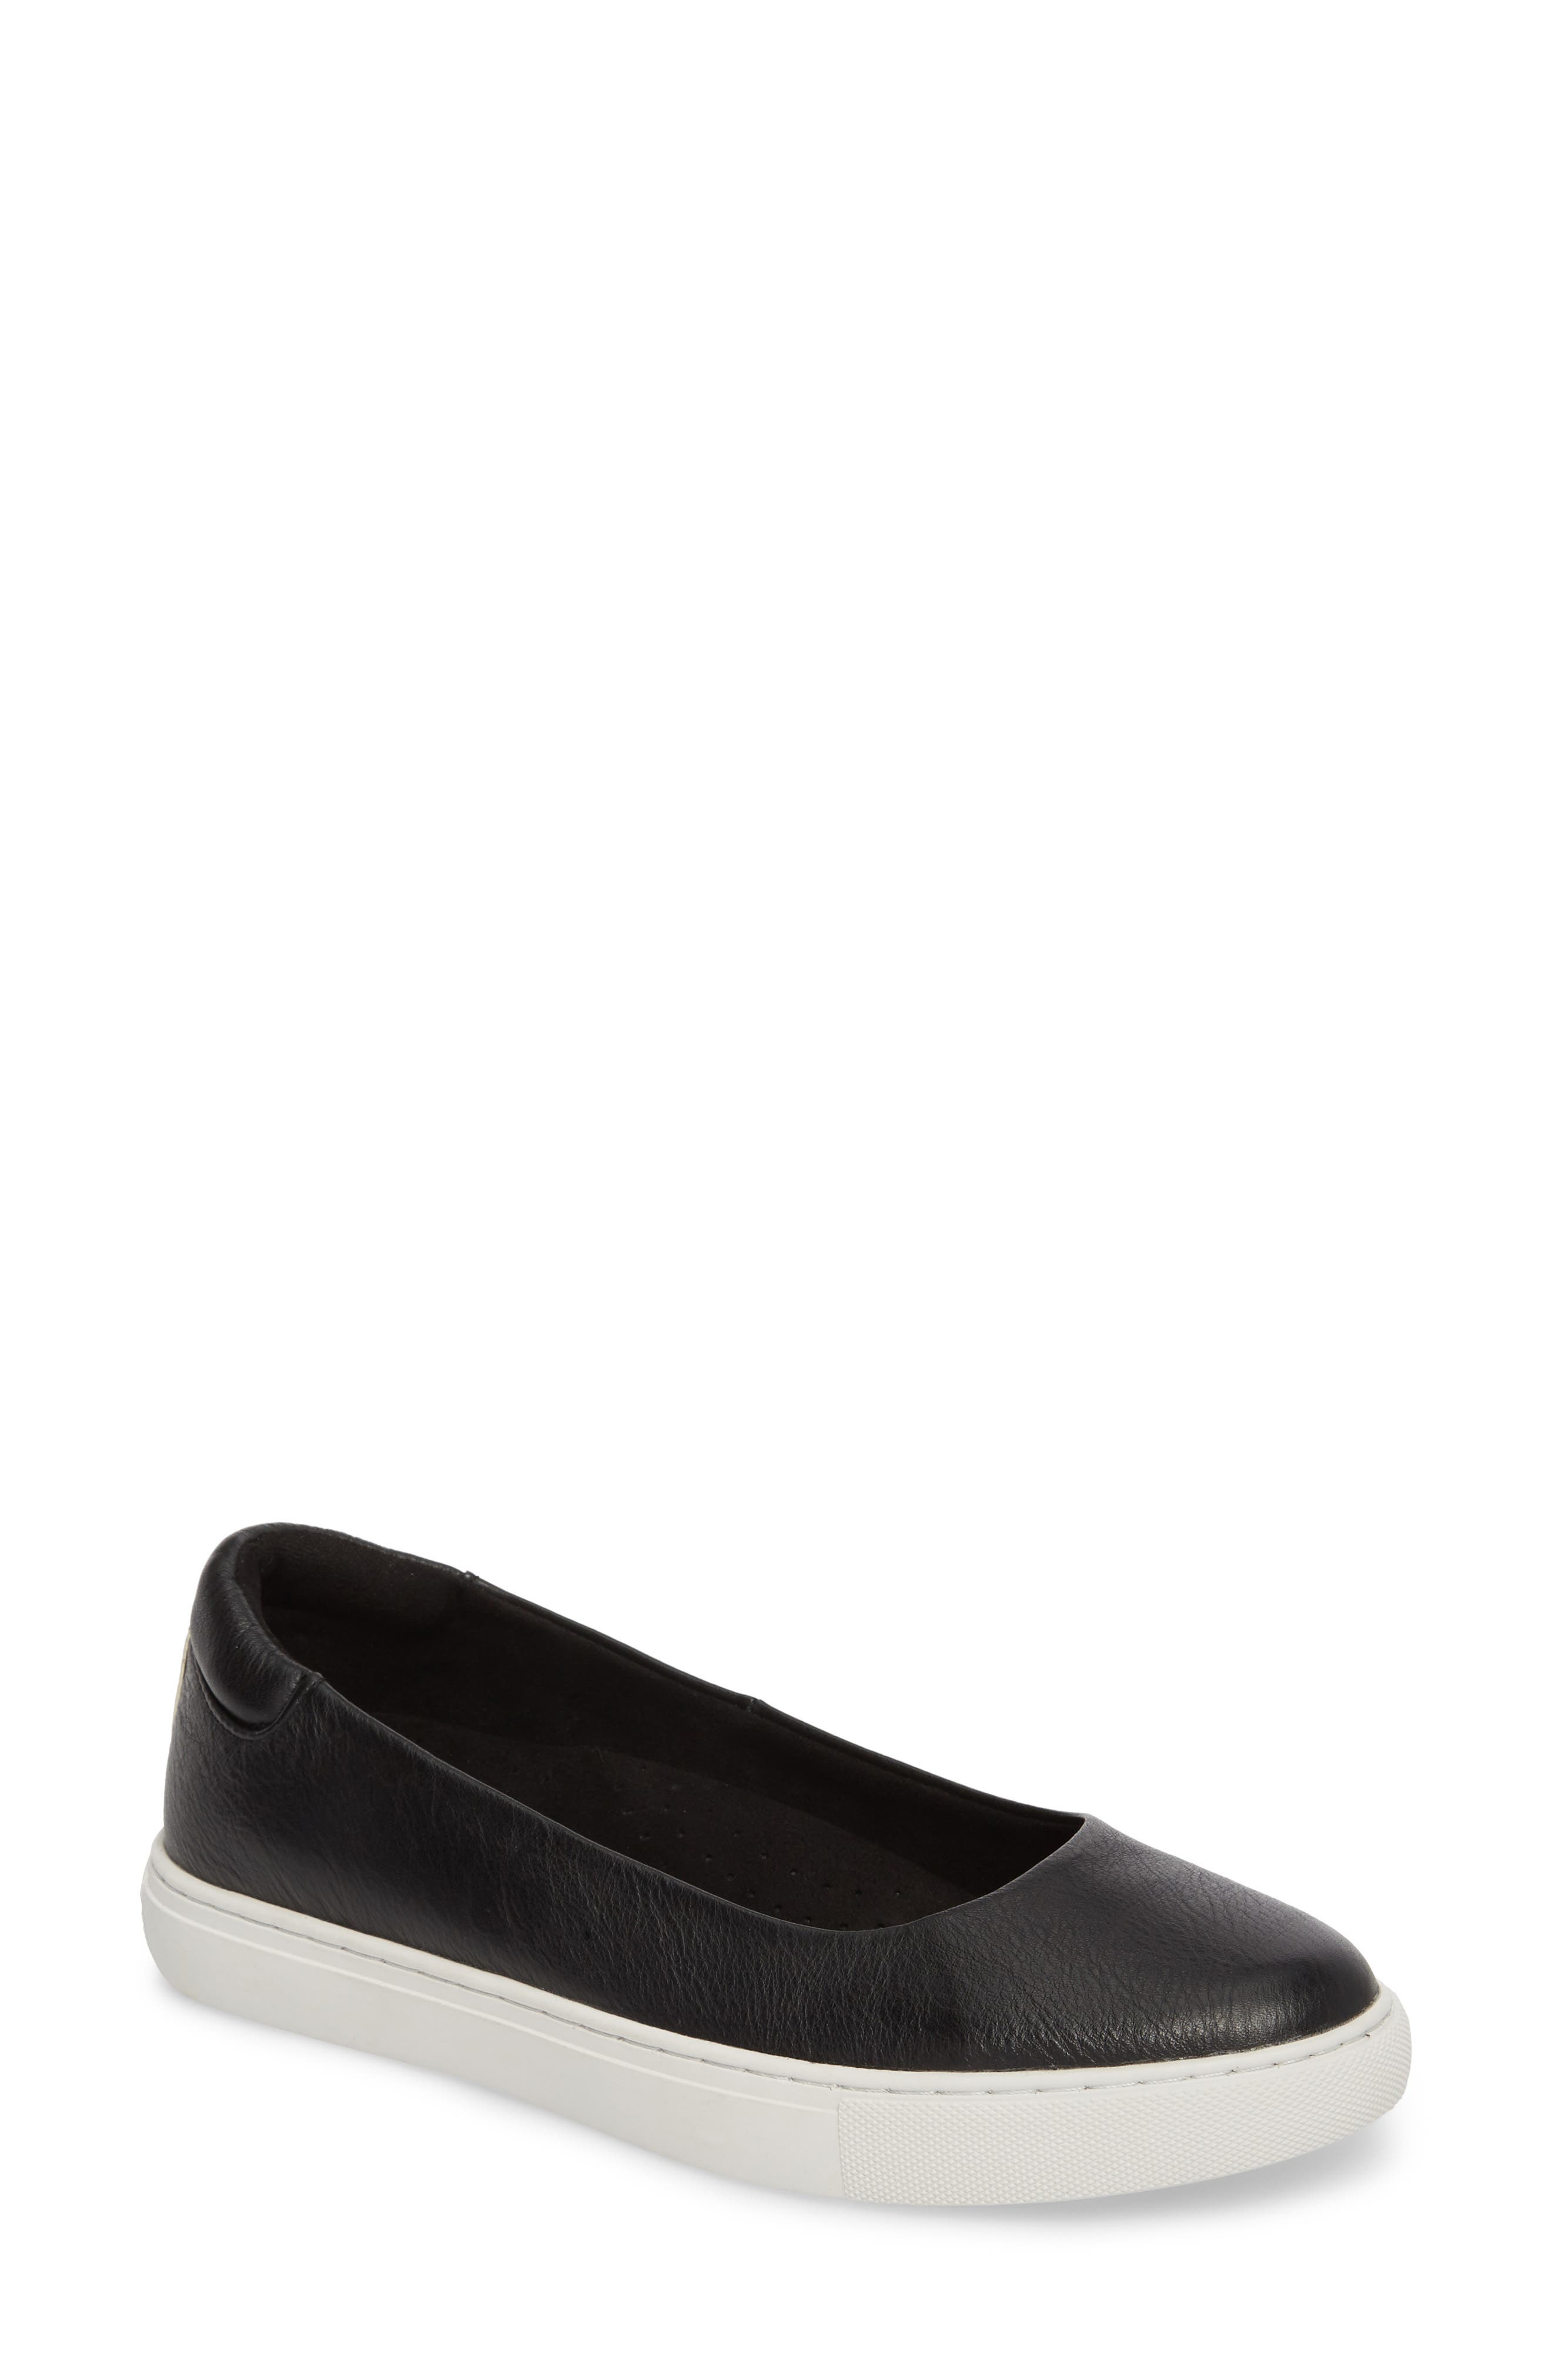 Kassie Flat,                         Main,                         color, BLACK LEATHER